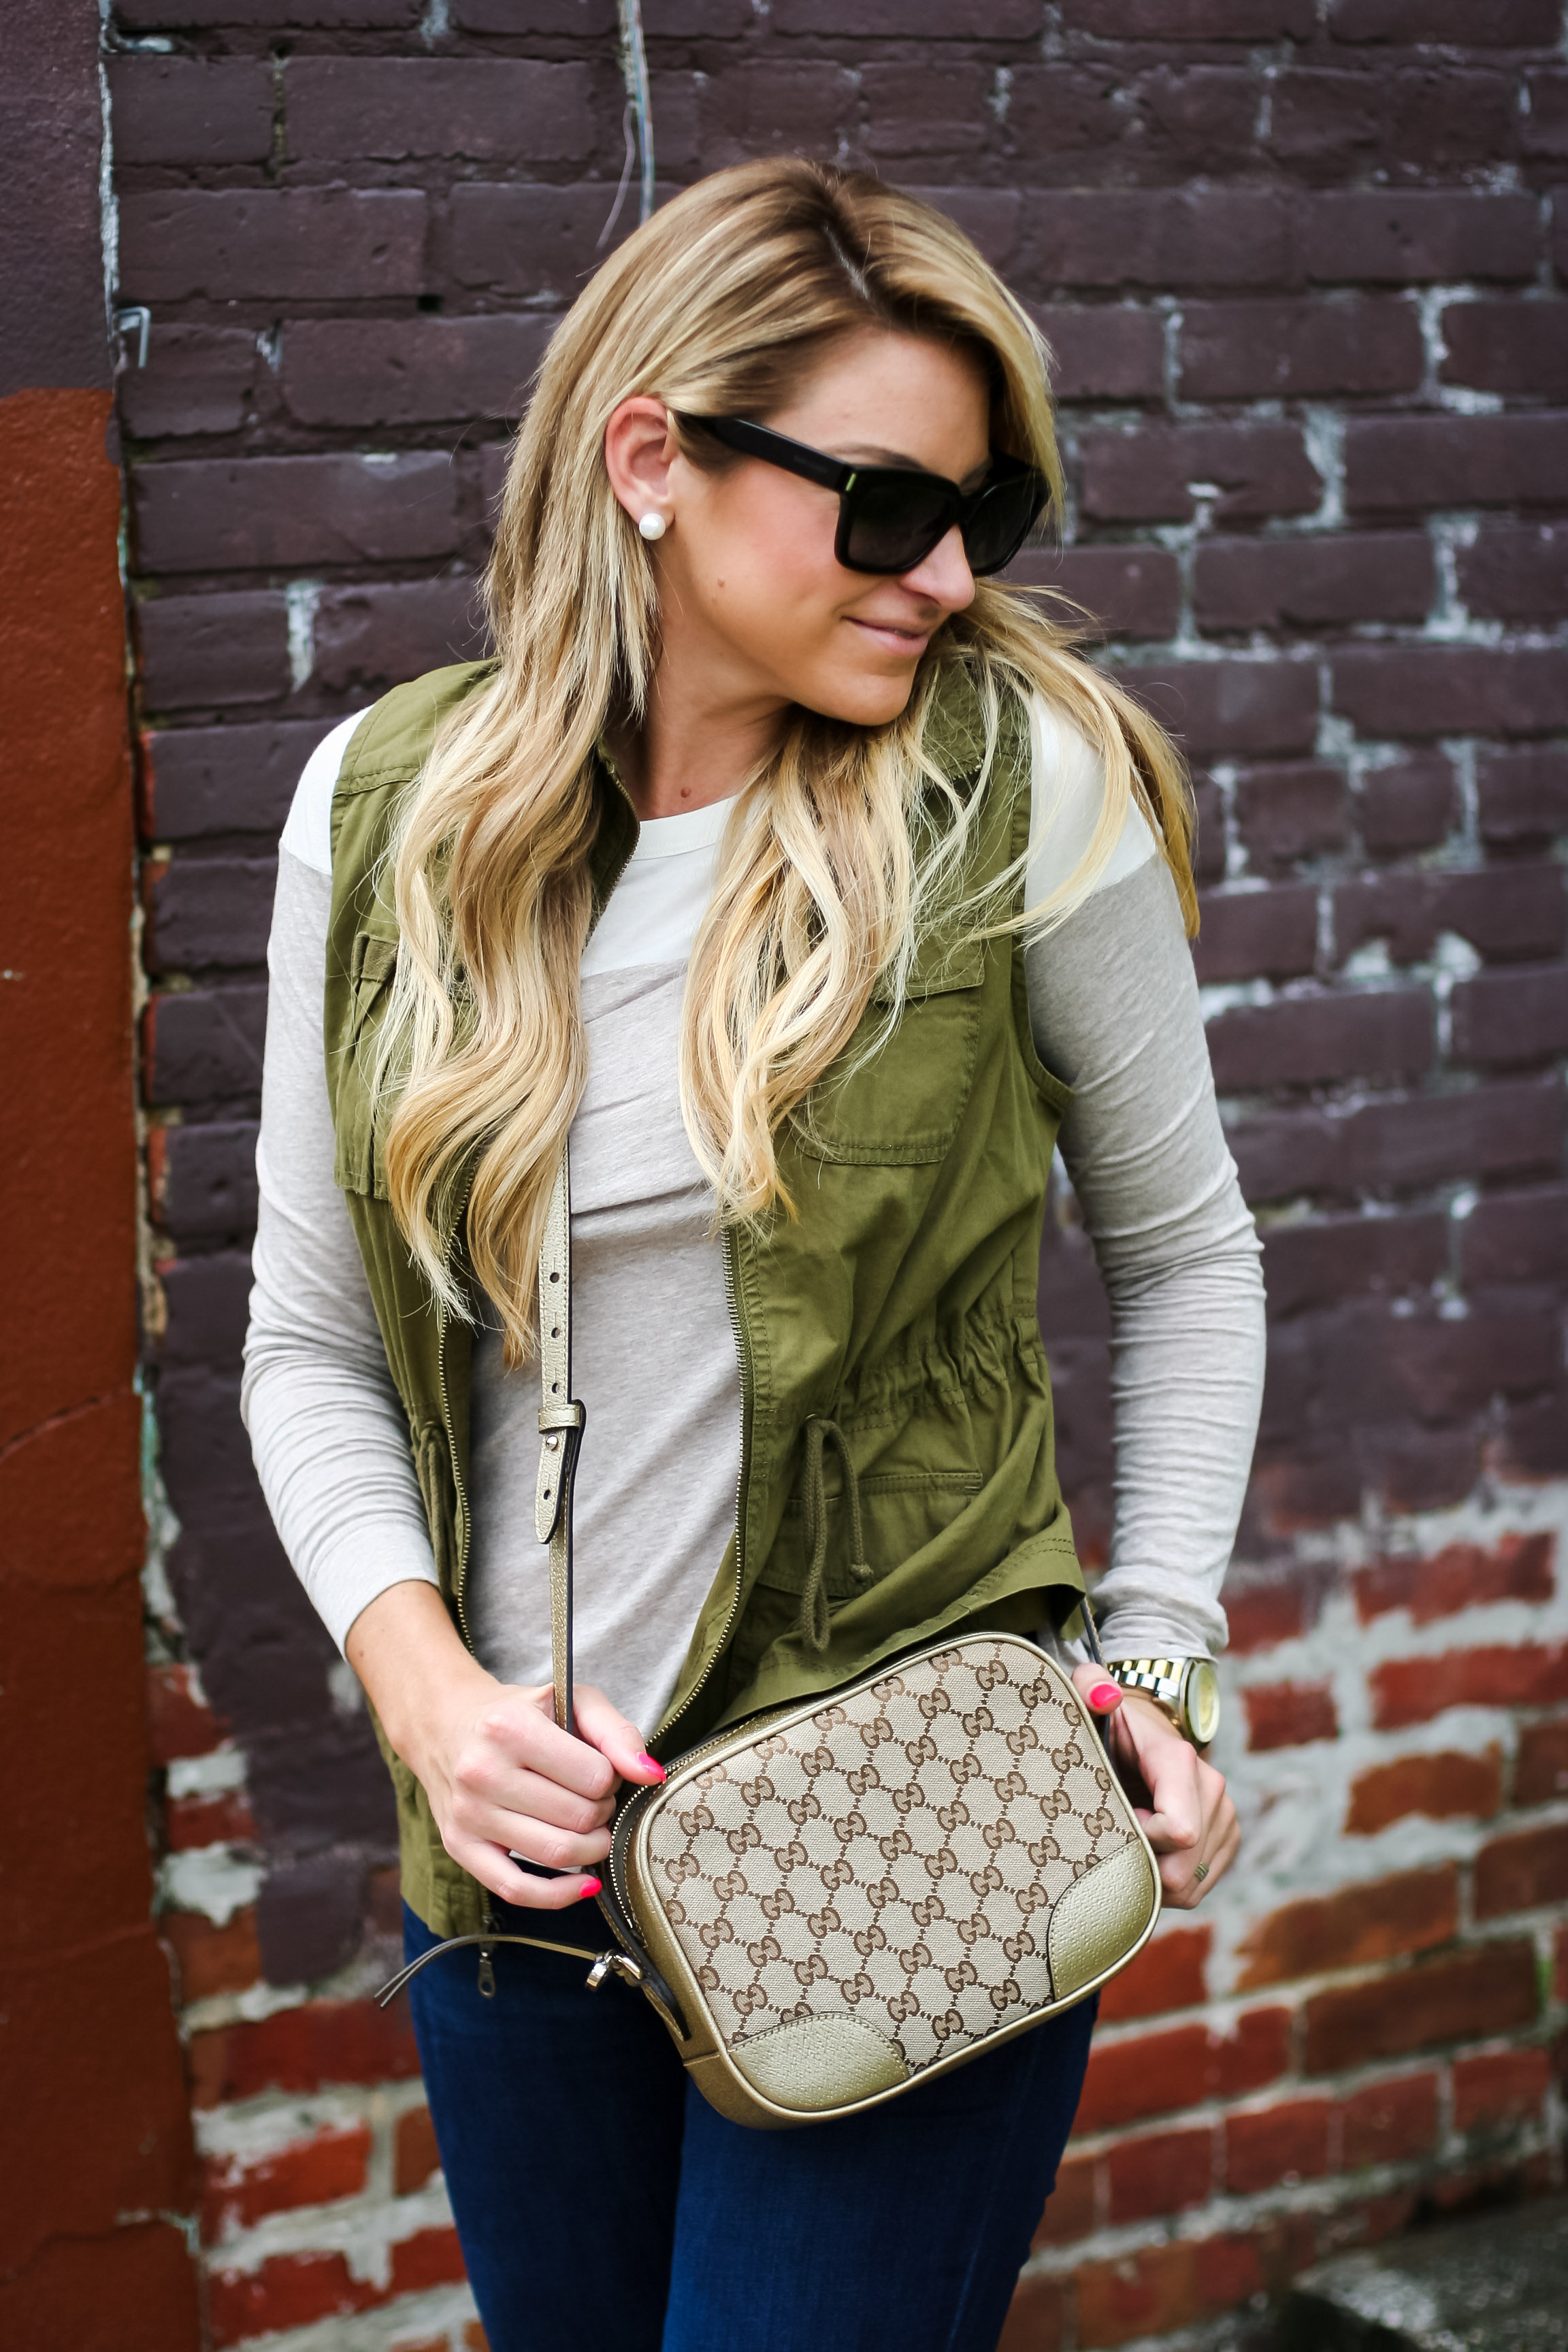 gucci bags at nordstrom. the best tunic for fall cargo anorak vest skinny jeans women nordstrom gucci bags at